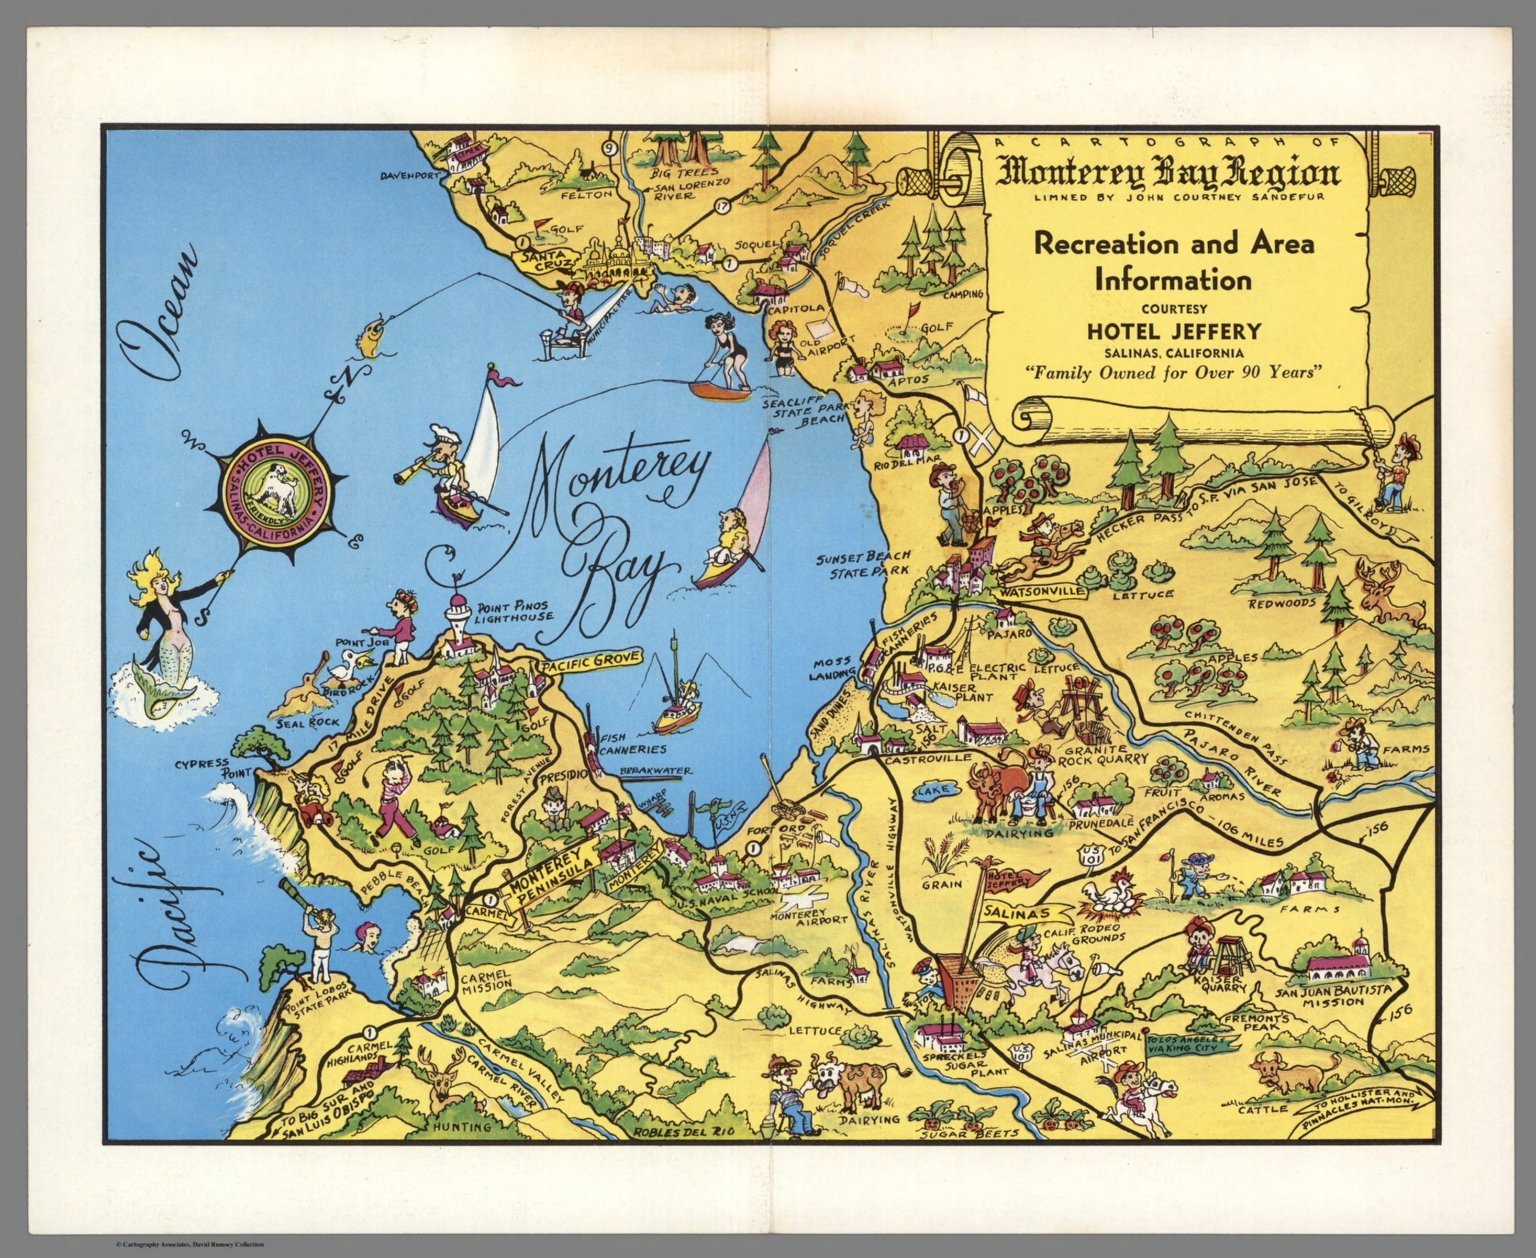 Cartograph Of Monterey Bay Region And Salinas Valley California David Rumsey Historical Map Collection The cheapest way to get from mountain view to monterey bay aquarium costs only $9, and the there are 6 ways to get from mountain view to monterey bay aquarium by night bus, bus, train or car. cartograph of monterey bay region and